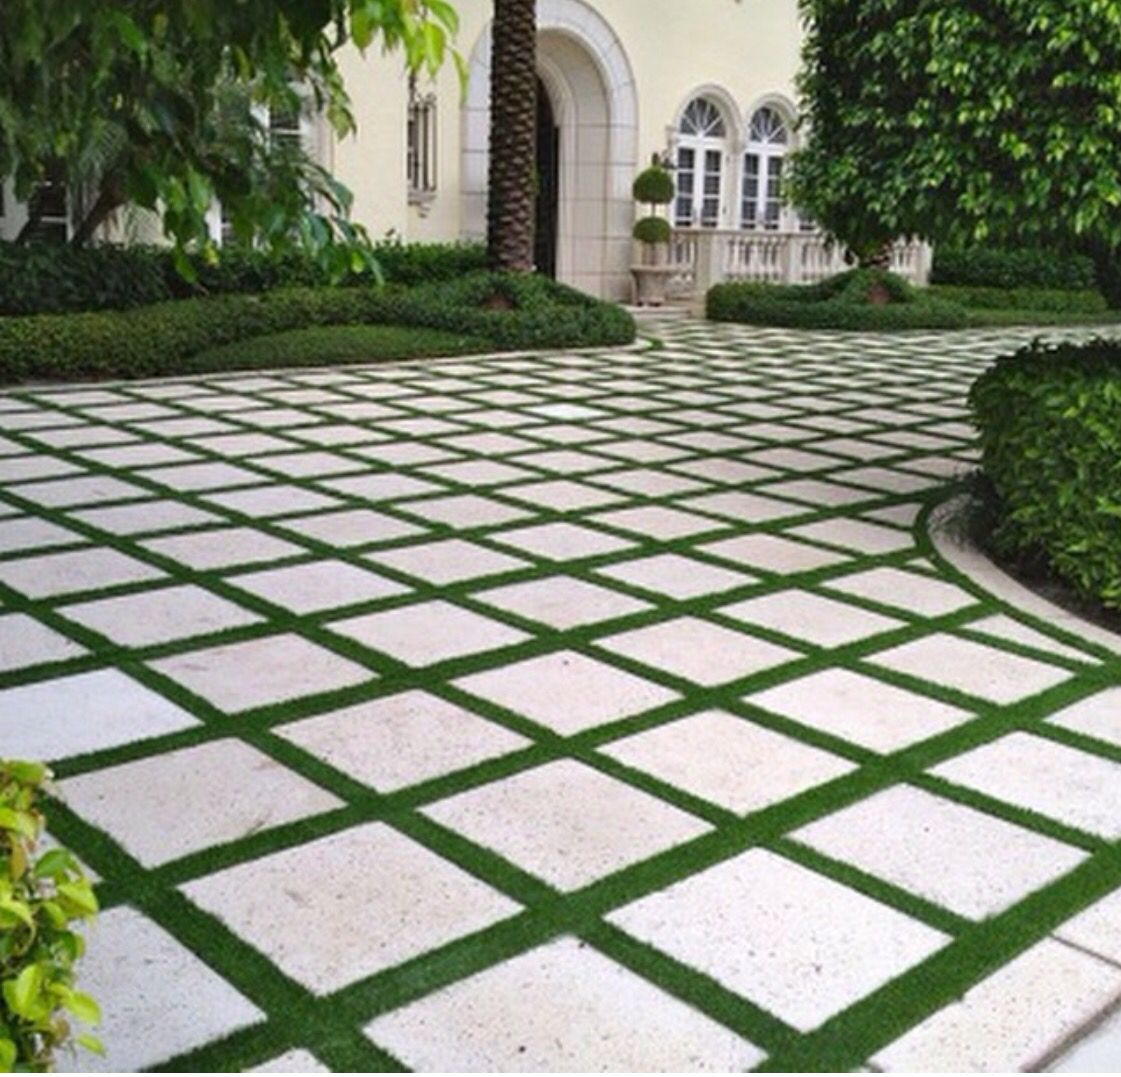 Use Of Artificial Grass For Driveway